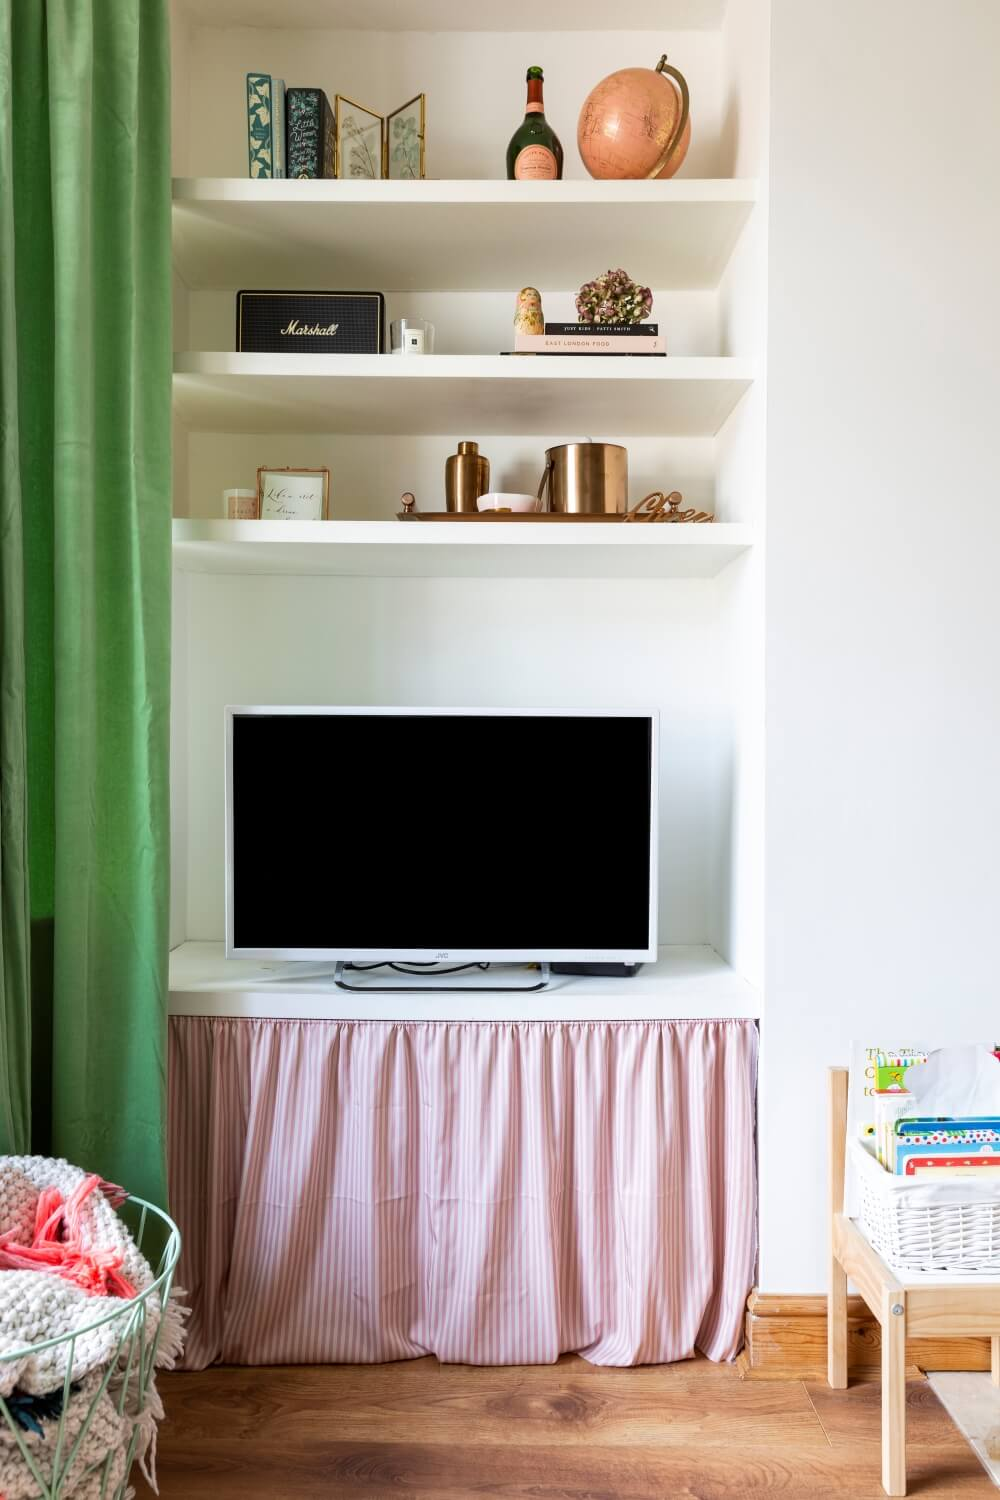 Decorate with Pink Home tour: View of a styled shelf alcove with diy curtain skirt below TV to hide ugly wires.